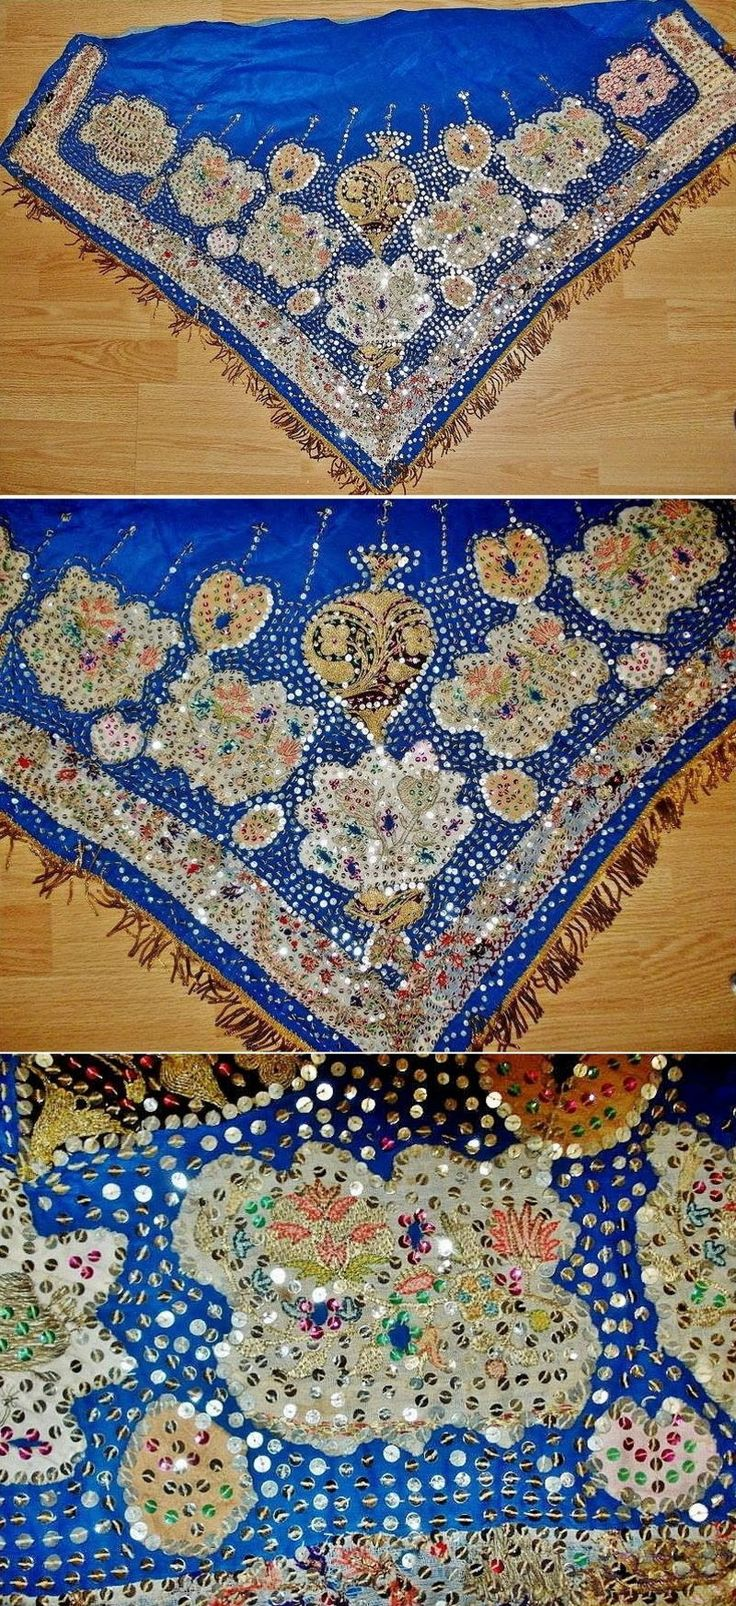 Woman's traditional festive 'arkalık' (waist cloth, generally worn on the backside), from Sille (near Konya), Turkish, ca. 1925.  Blue silk, adorned with silk embroideries and sequins (both metallic and mica).  Possibly an older piece of Rum (Anatolian Greek) origin.   Until 1922-24 the village was inhabited by Rum people; after they left the village (population exchange of 1922), the new Turkish inhabitants adopted some parts of the former traditional Greek costumes. (Source: Antika Osmanlı…